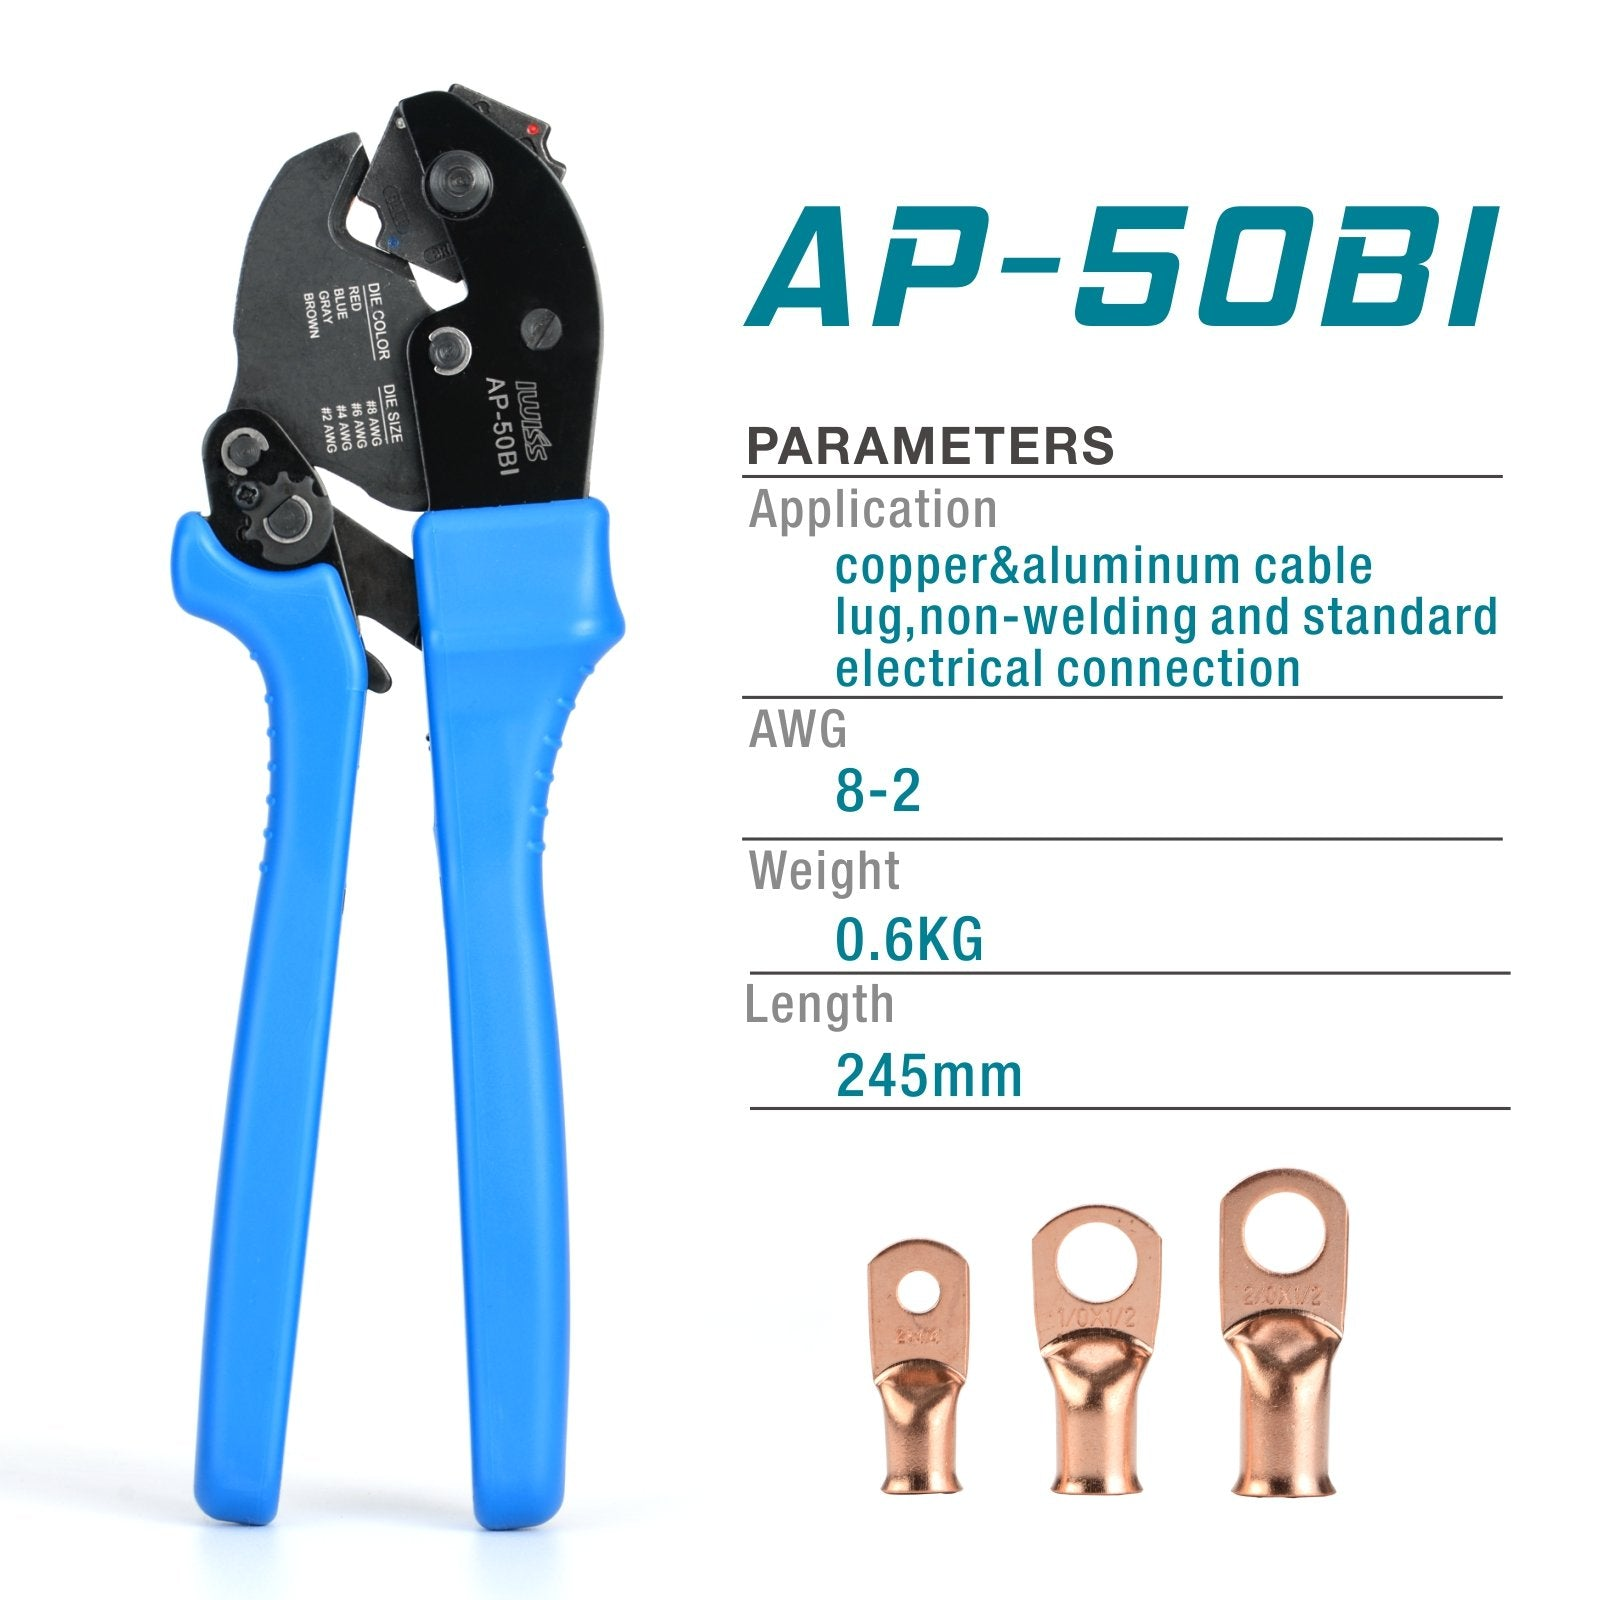 AP-50BI Cable Crimper for Copper Cable Lugs from 8-2AWG